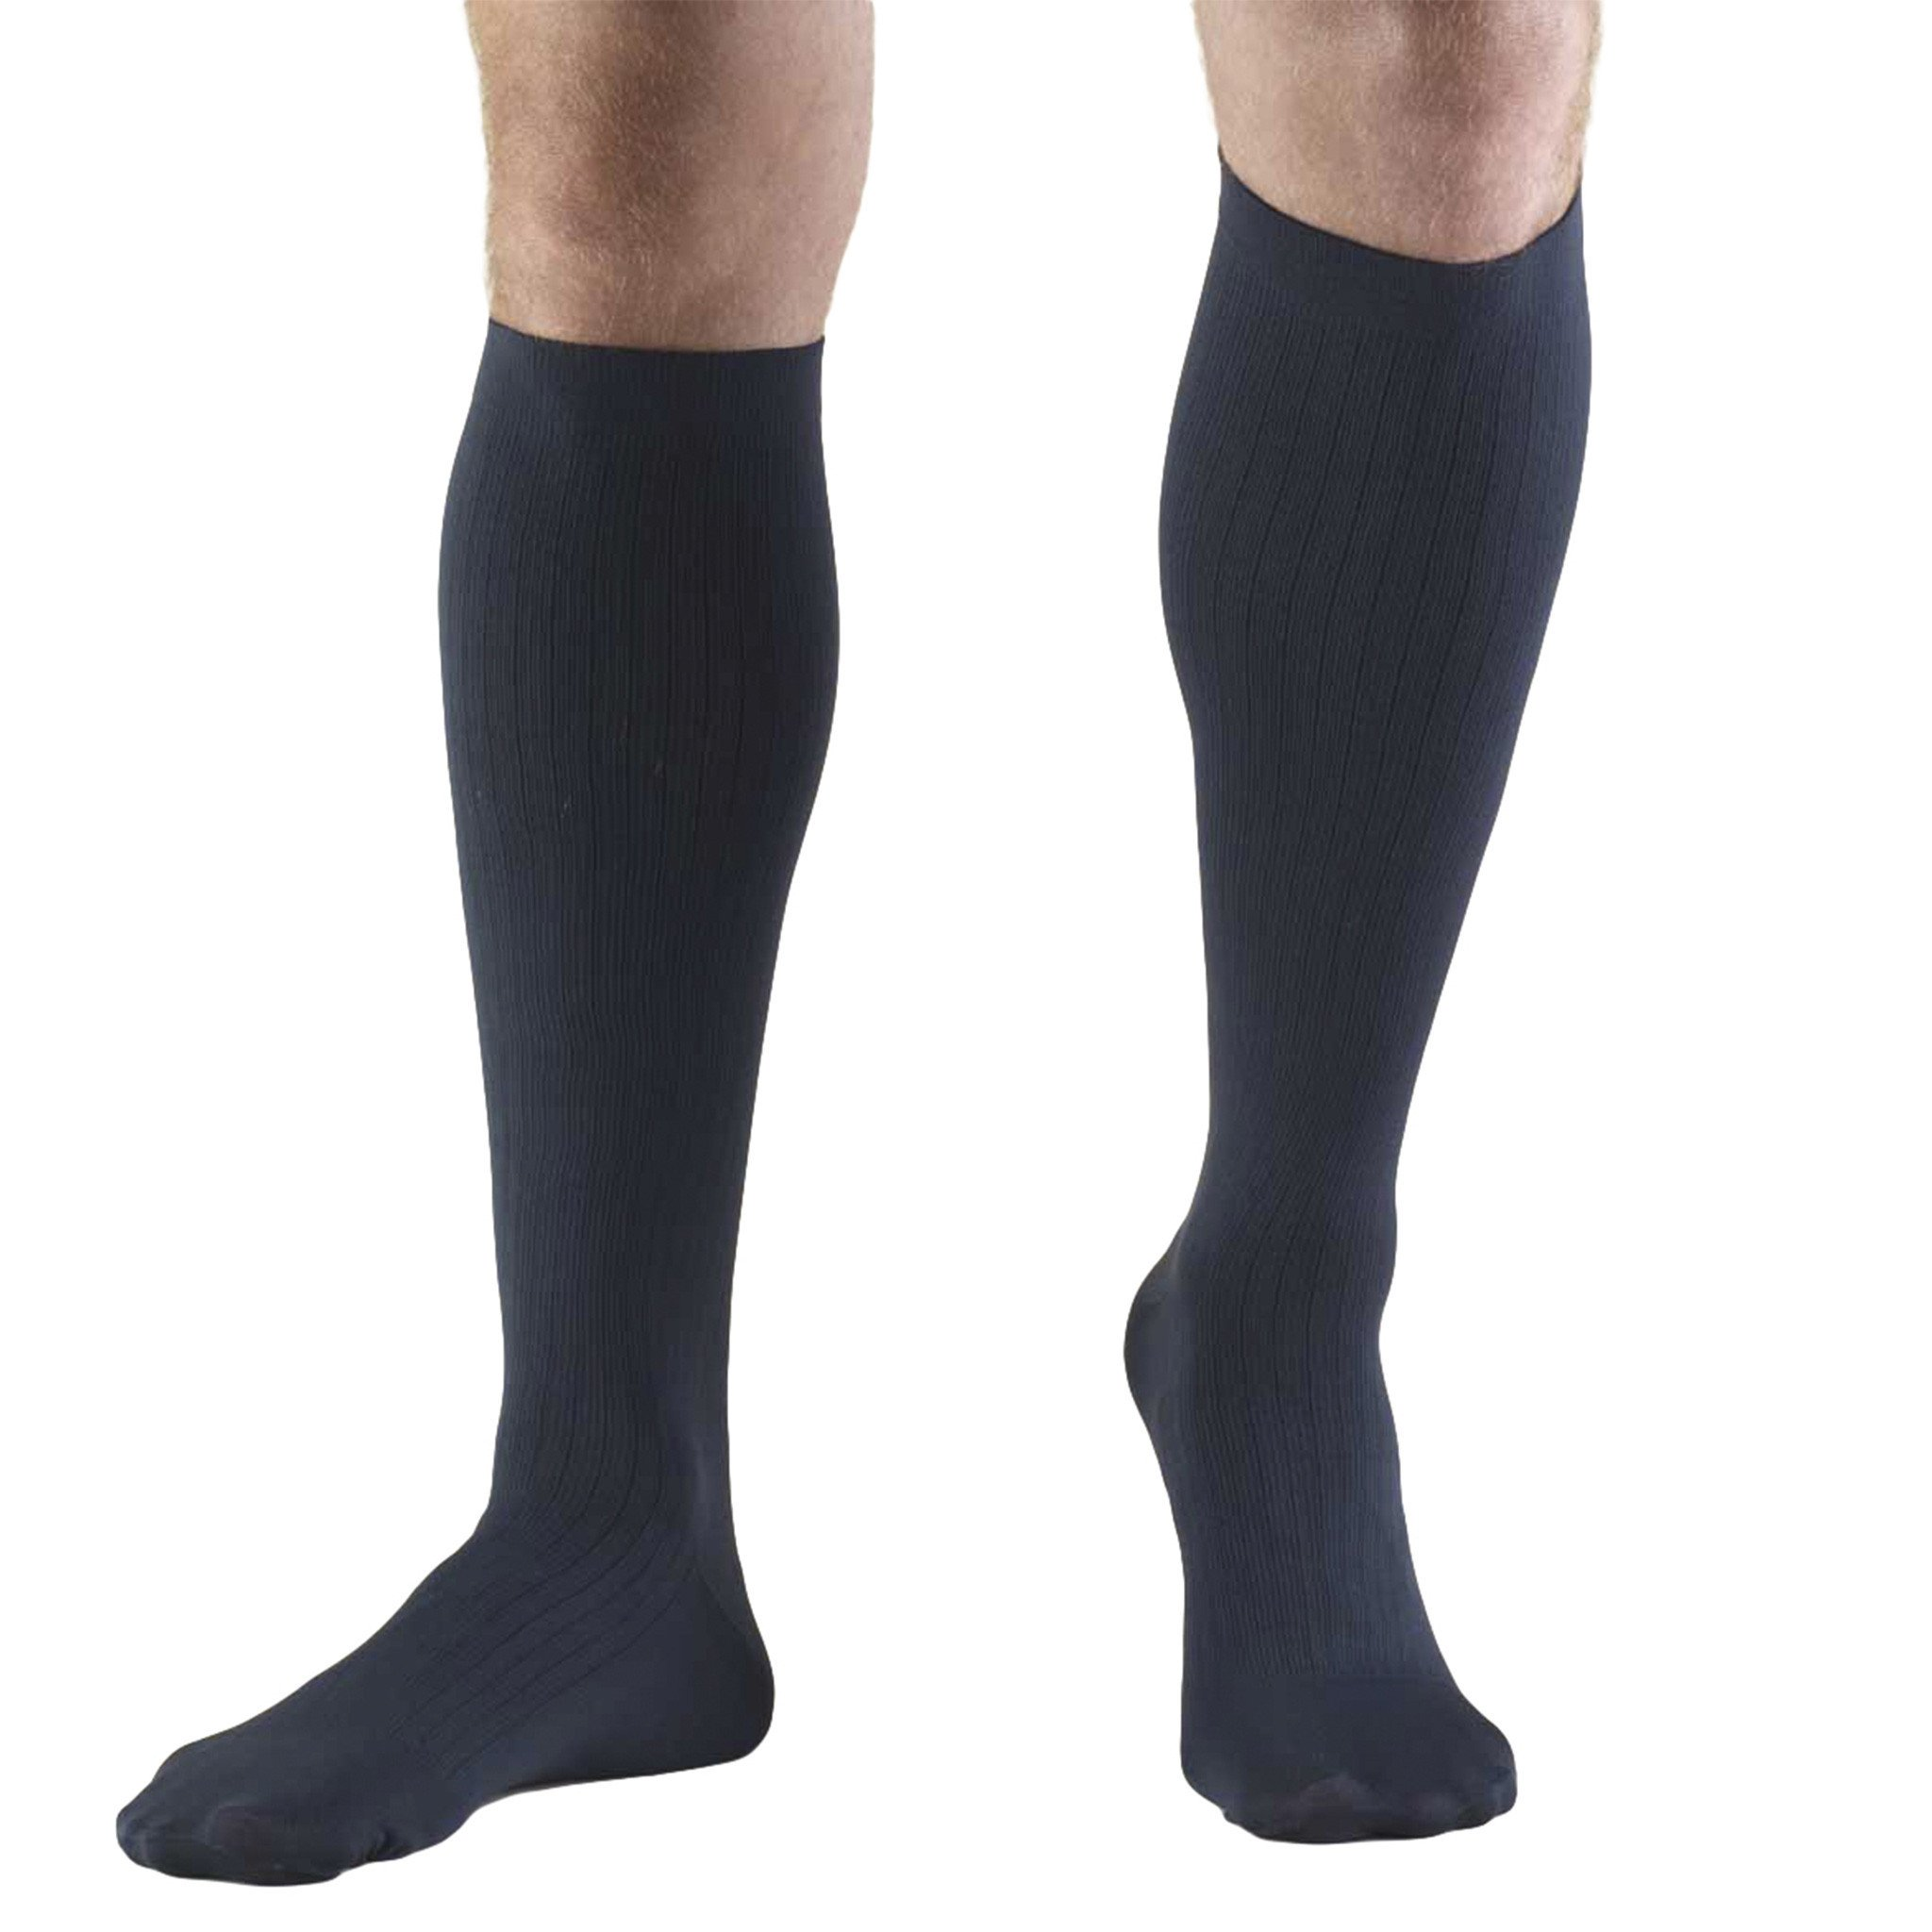 Truform Compression Socks, 8-15 mmHg, Mens Dress Socks, Knee High Over